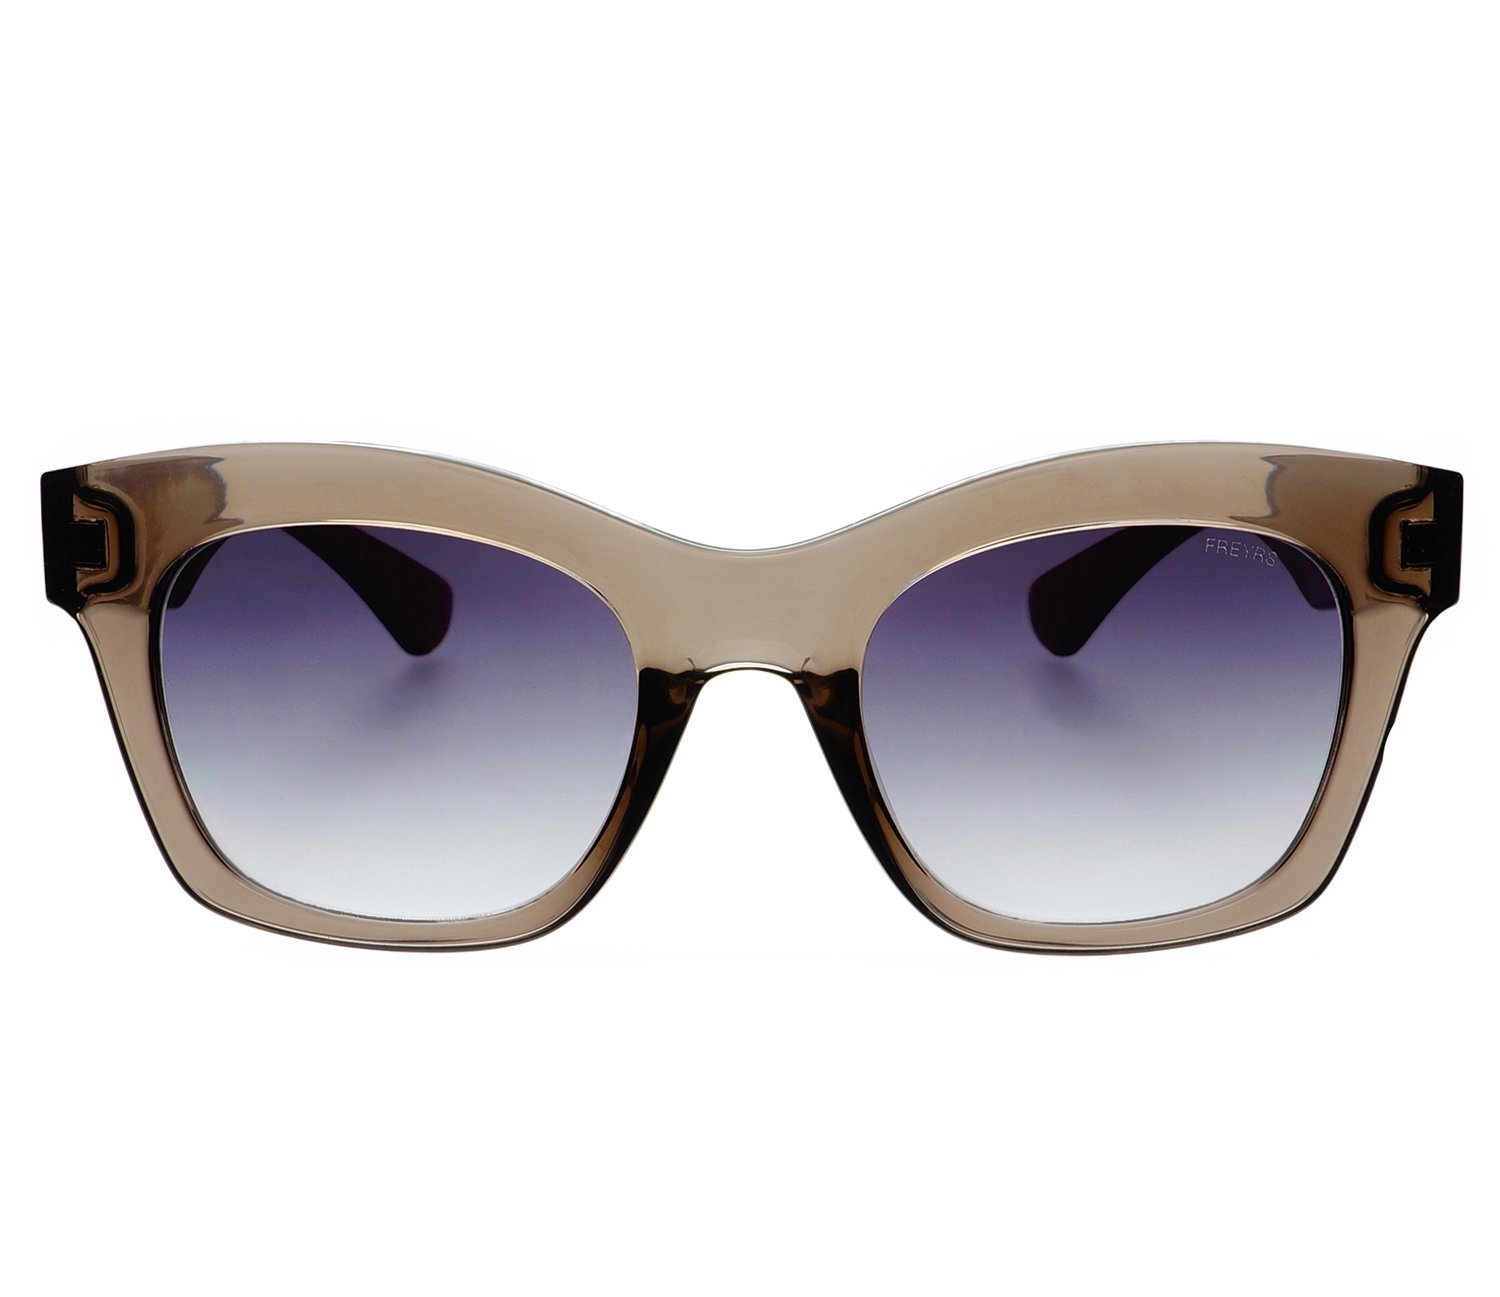 FREYRS Zoe Cat Eye Sunglasses - Two Penny Blue